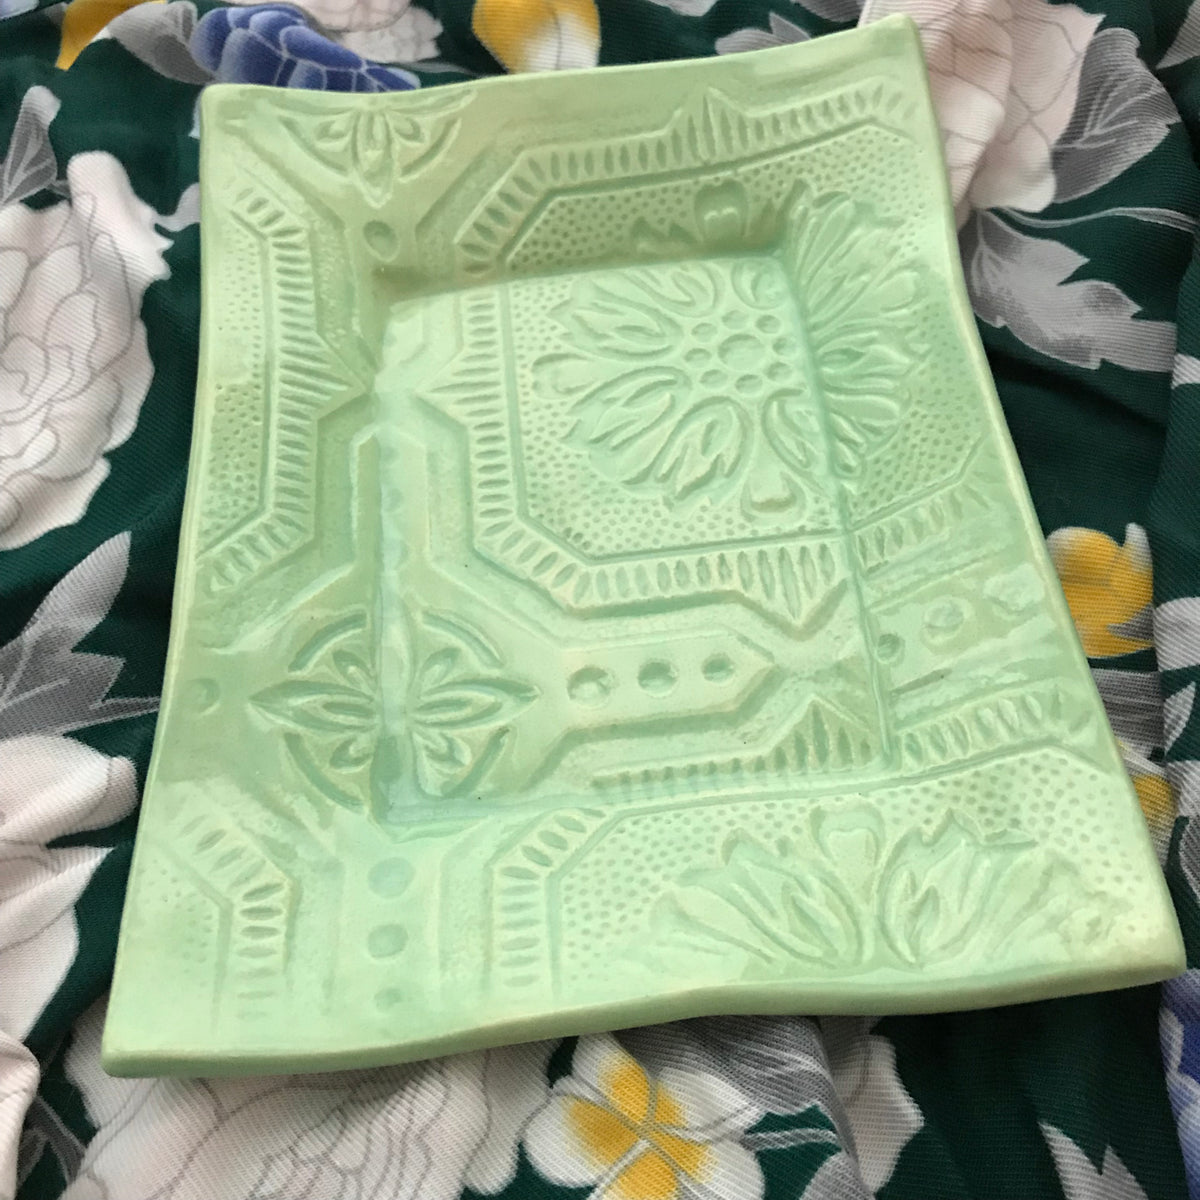 Our 5 x 7 inch handmade tray in beautiful spa green is a totally functional food tray.  Food, dishwasher and microwave safe.  The design is deeply embossed with a contemporary flair.